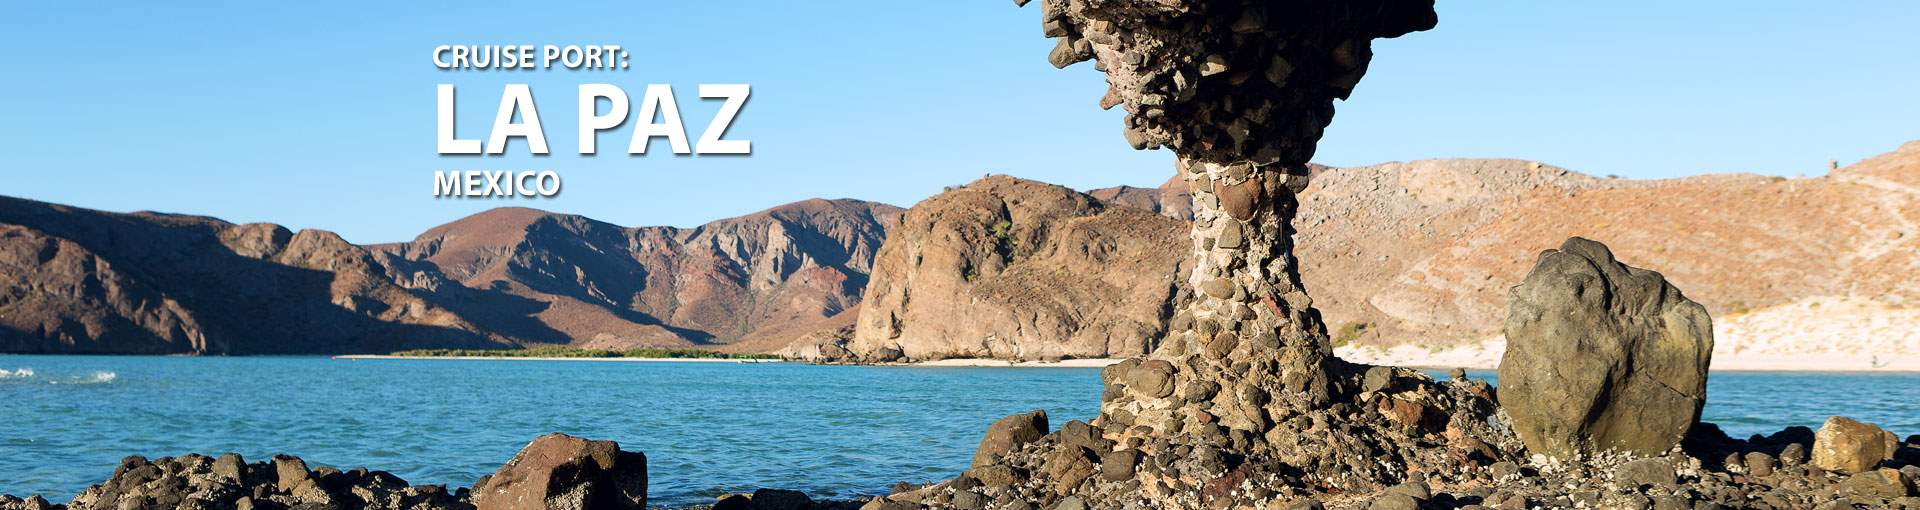 Cruises to La Paz, Mexico